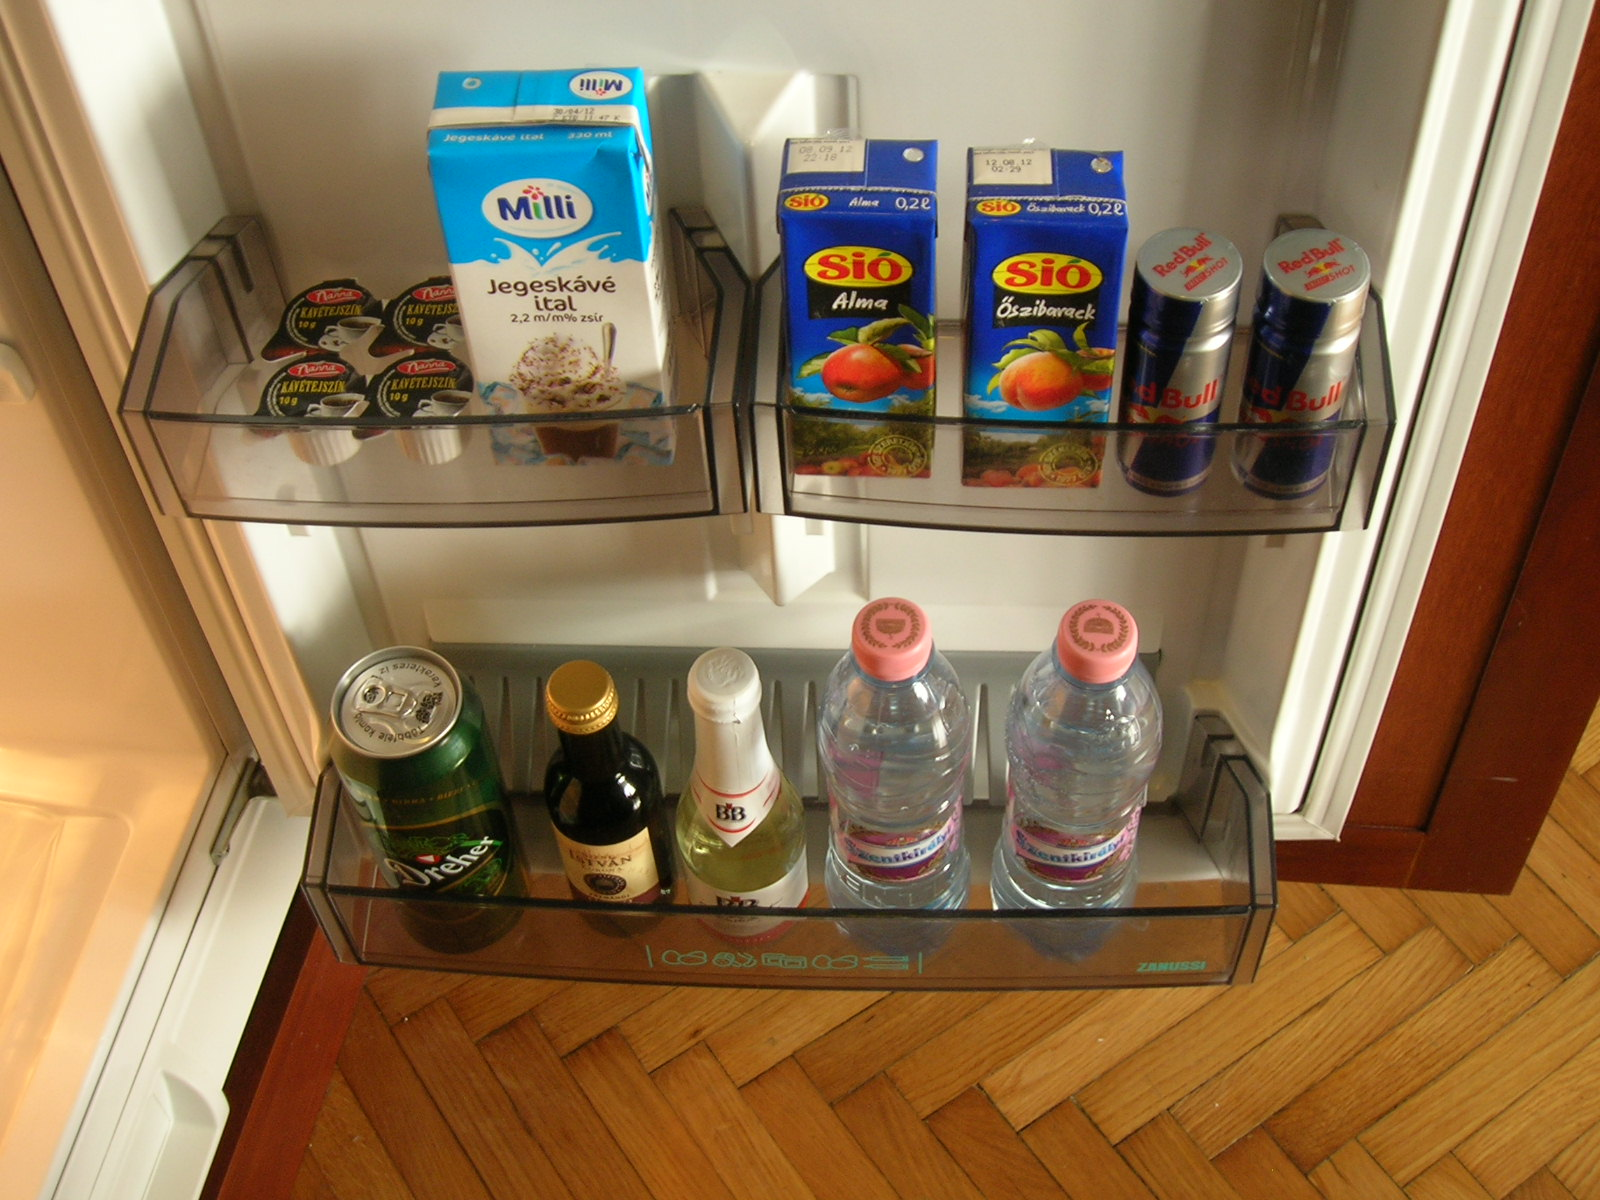 Free of charge mini bar